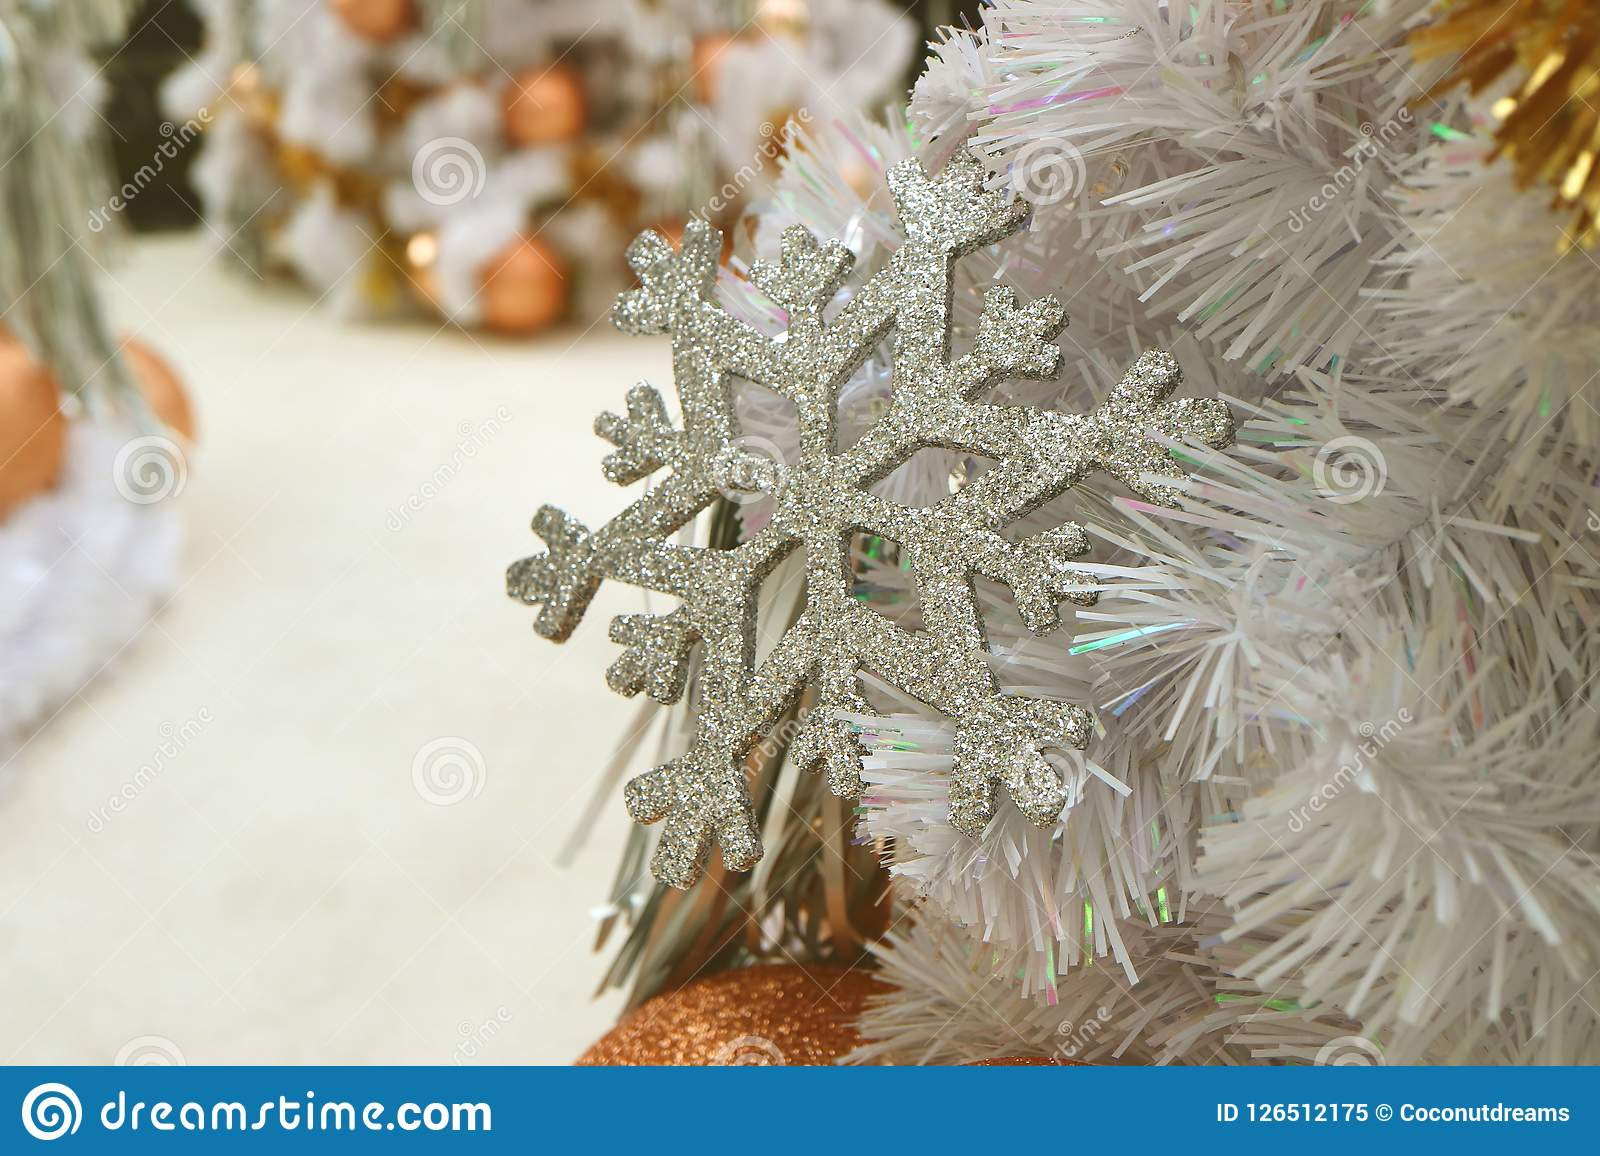 Closed up silver glitter snowflake ornament on white Christmas tree. Selective focus and blurred background Royalty Free Stock Photo